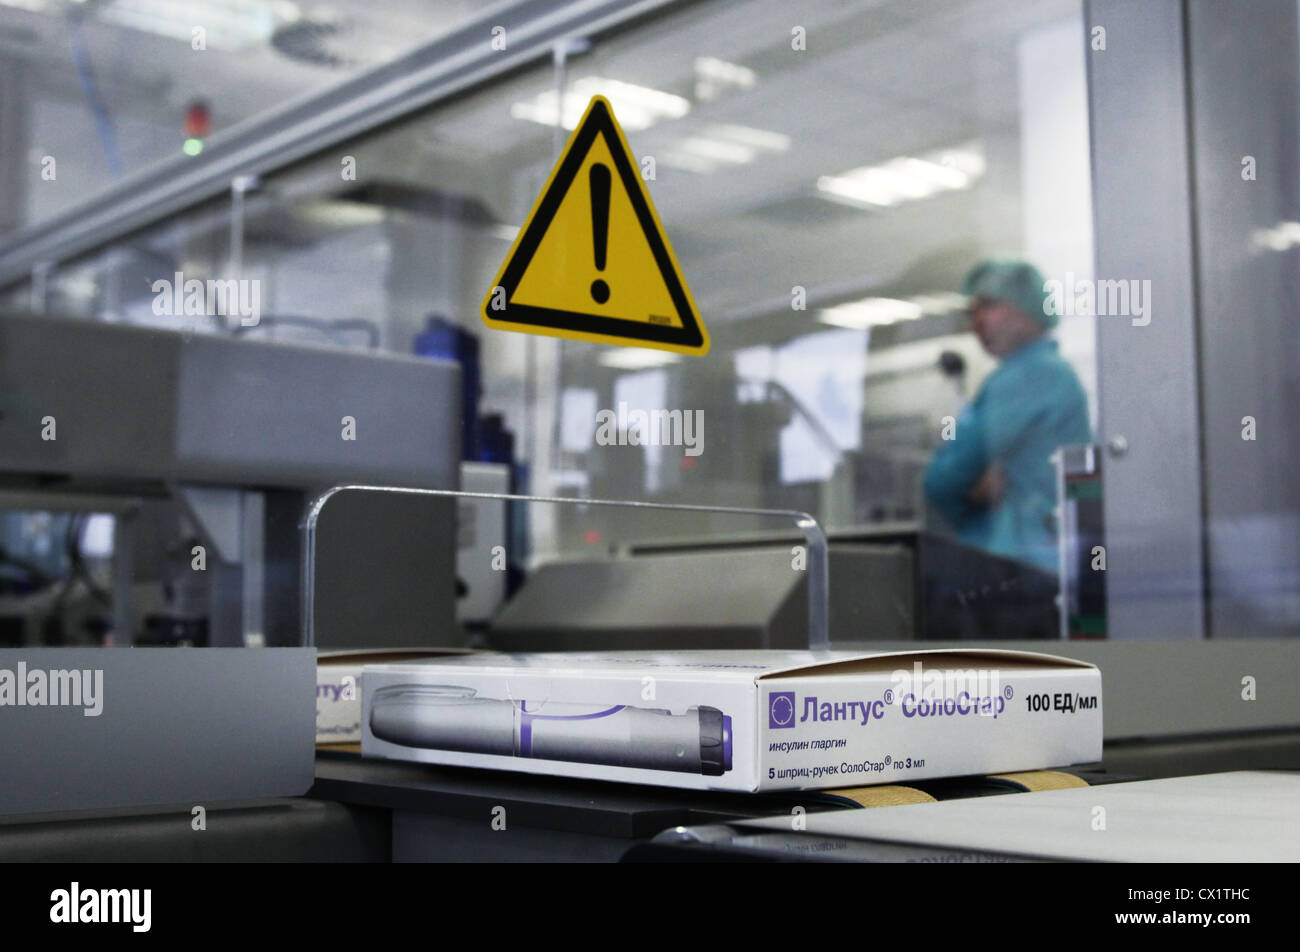 ITAR-TASS: ORYOL REGION, RUSSIA. MAY 24, 2011. Boxed insulin glargine pens (brand name Lantus SoloStar) on an assembly - Stock Image